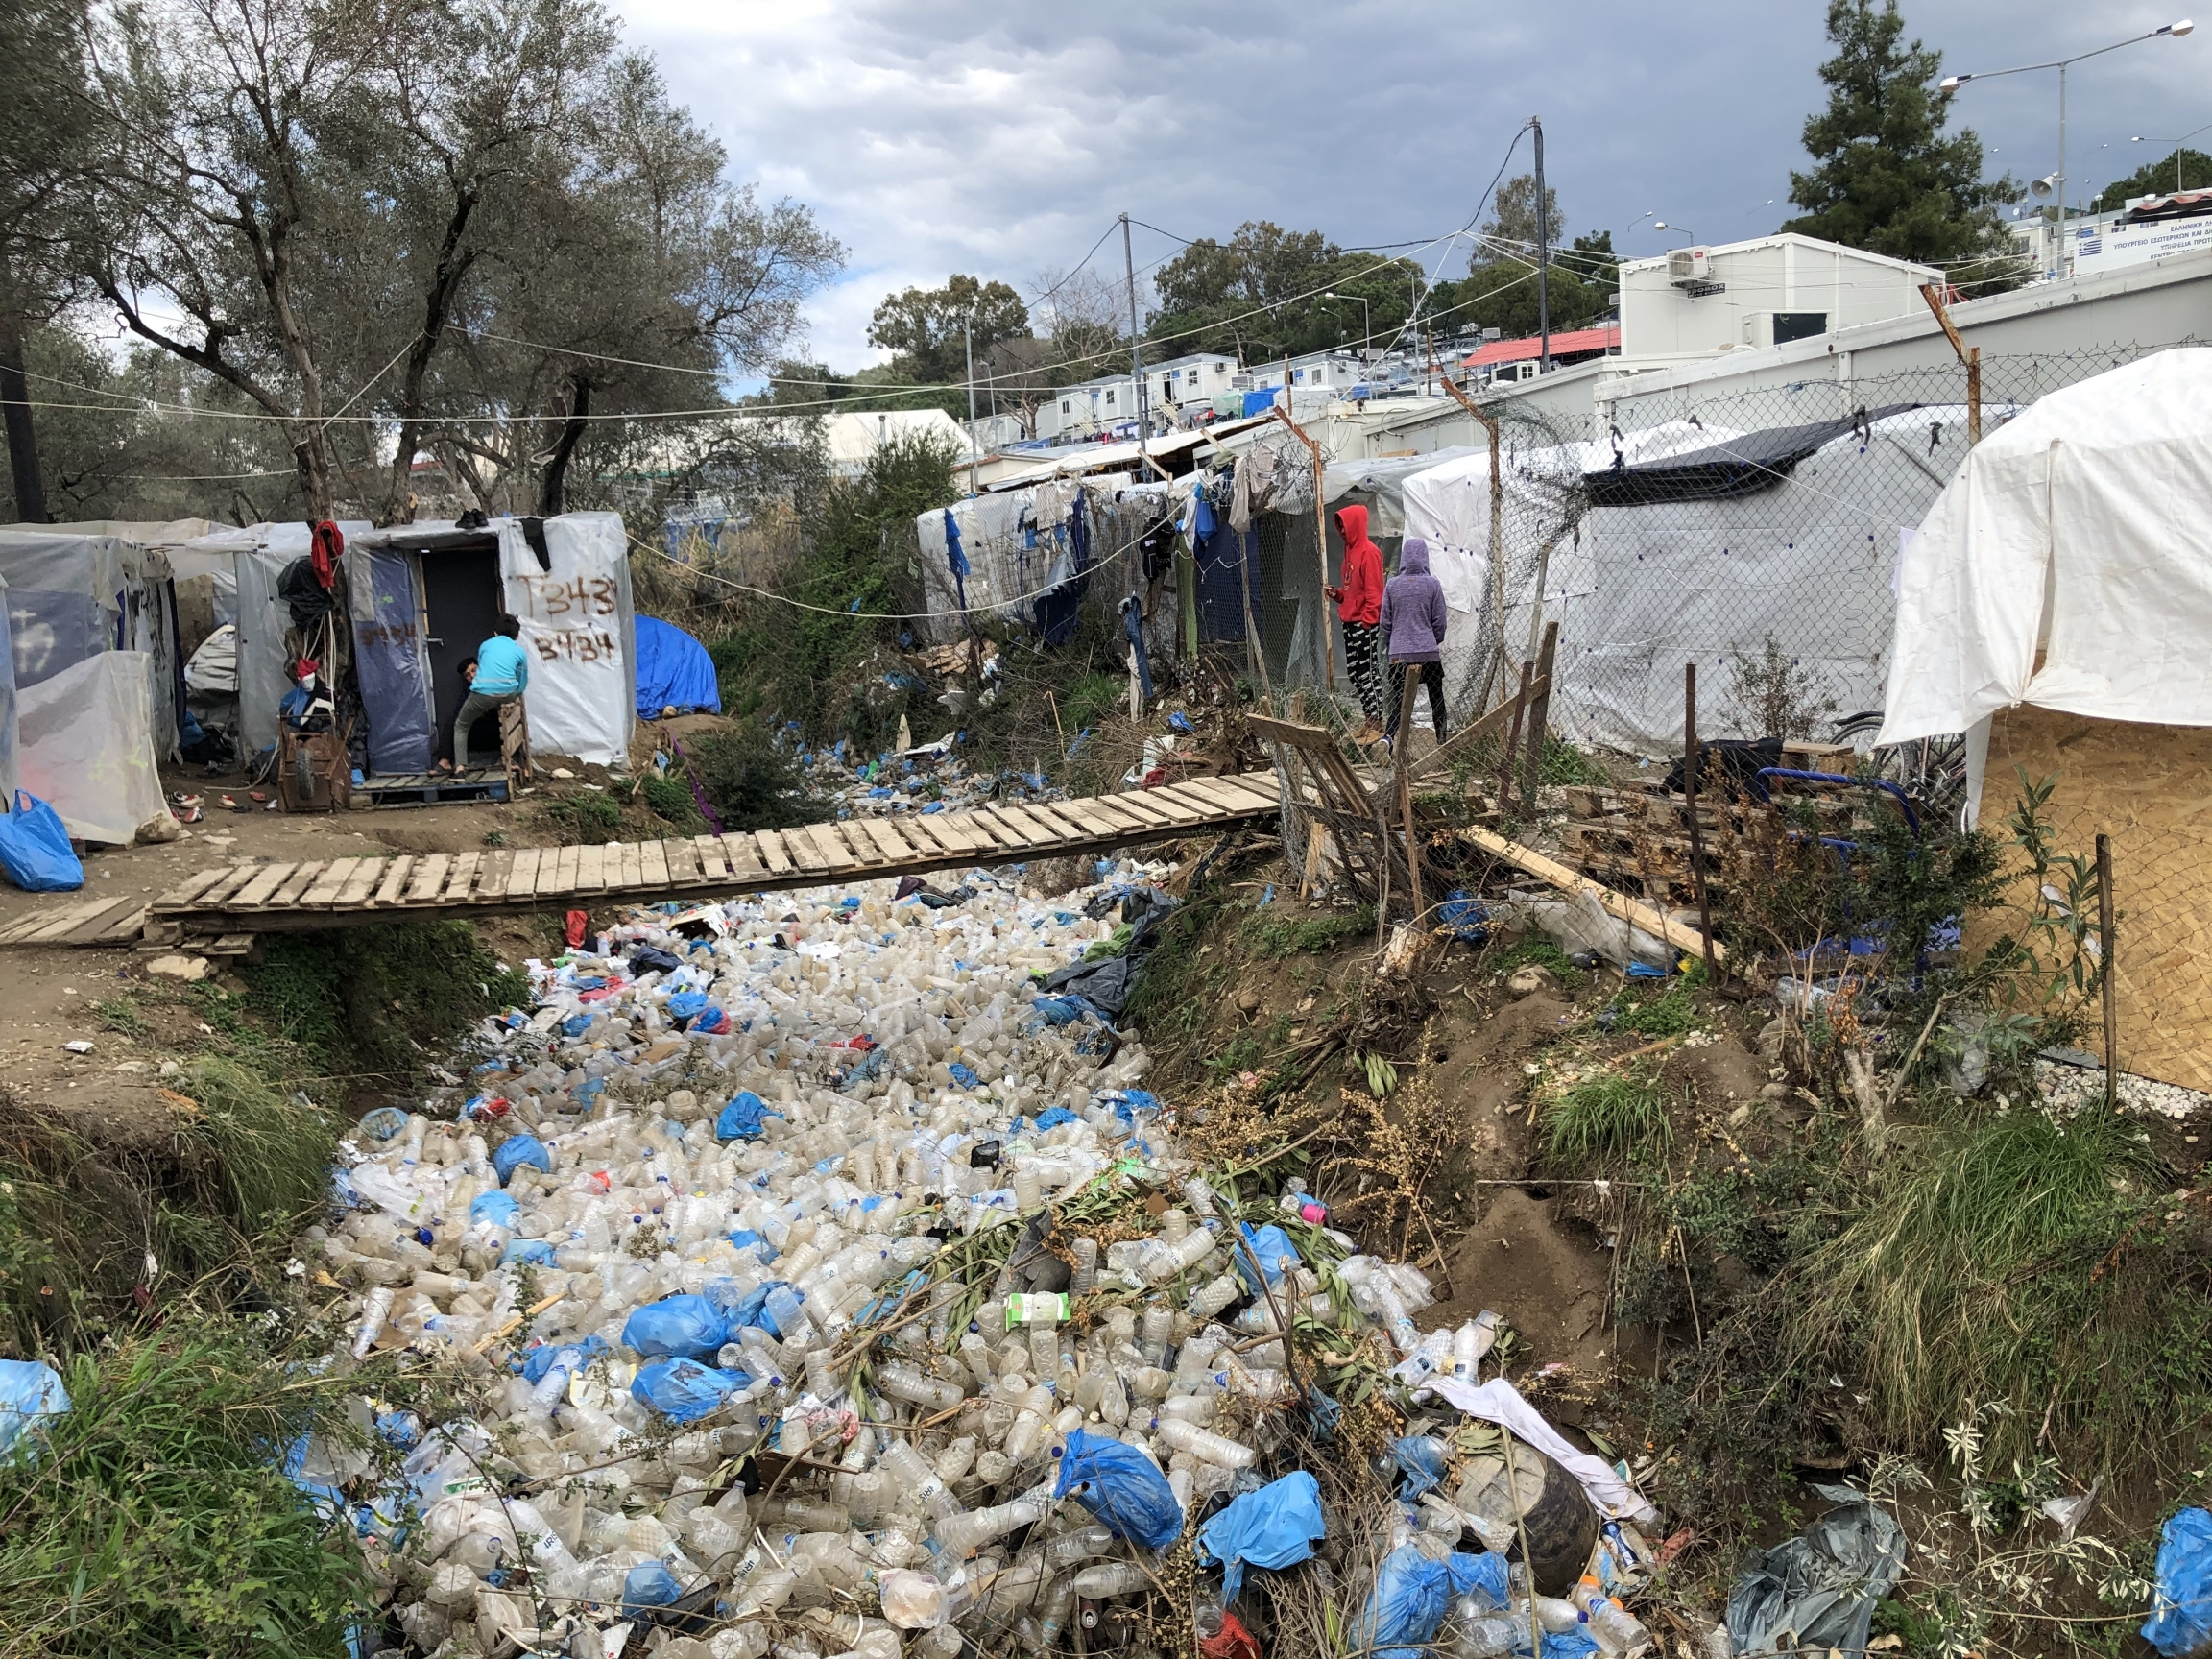 Garbage is strewn between tents in Moria, an overcrowded refugee camp on the Greek island of Lesbos.